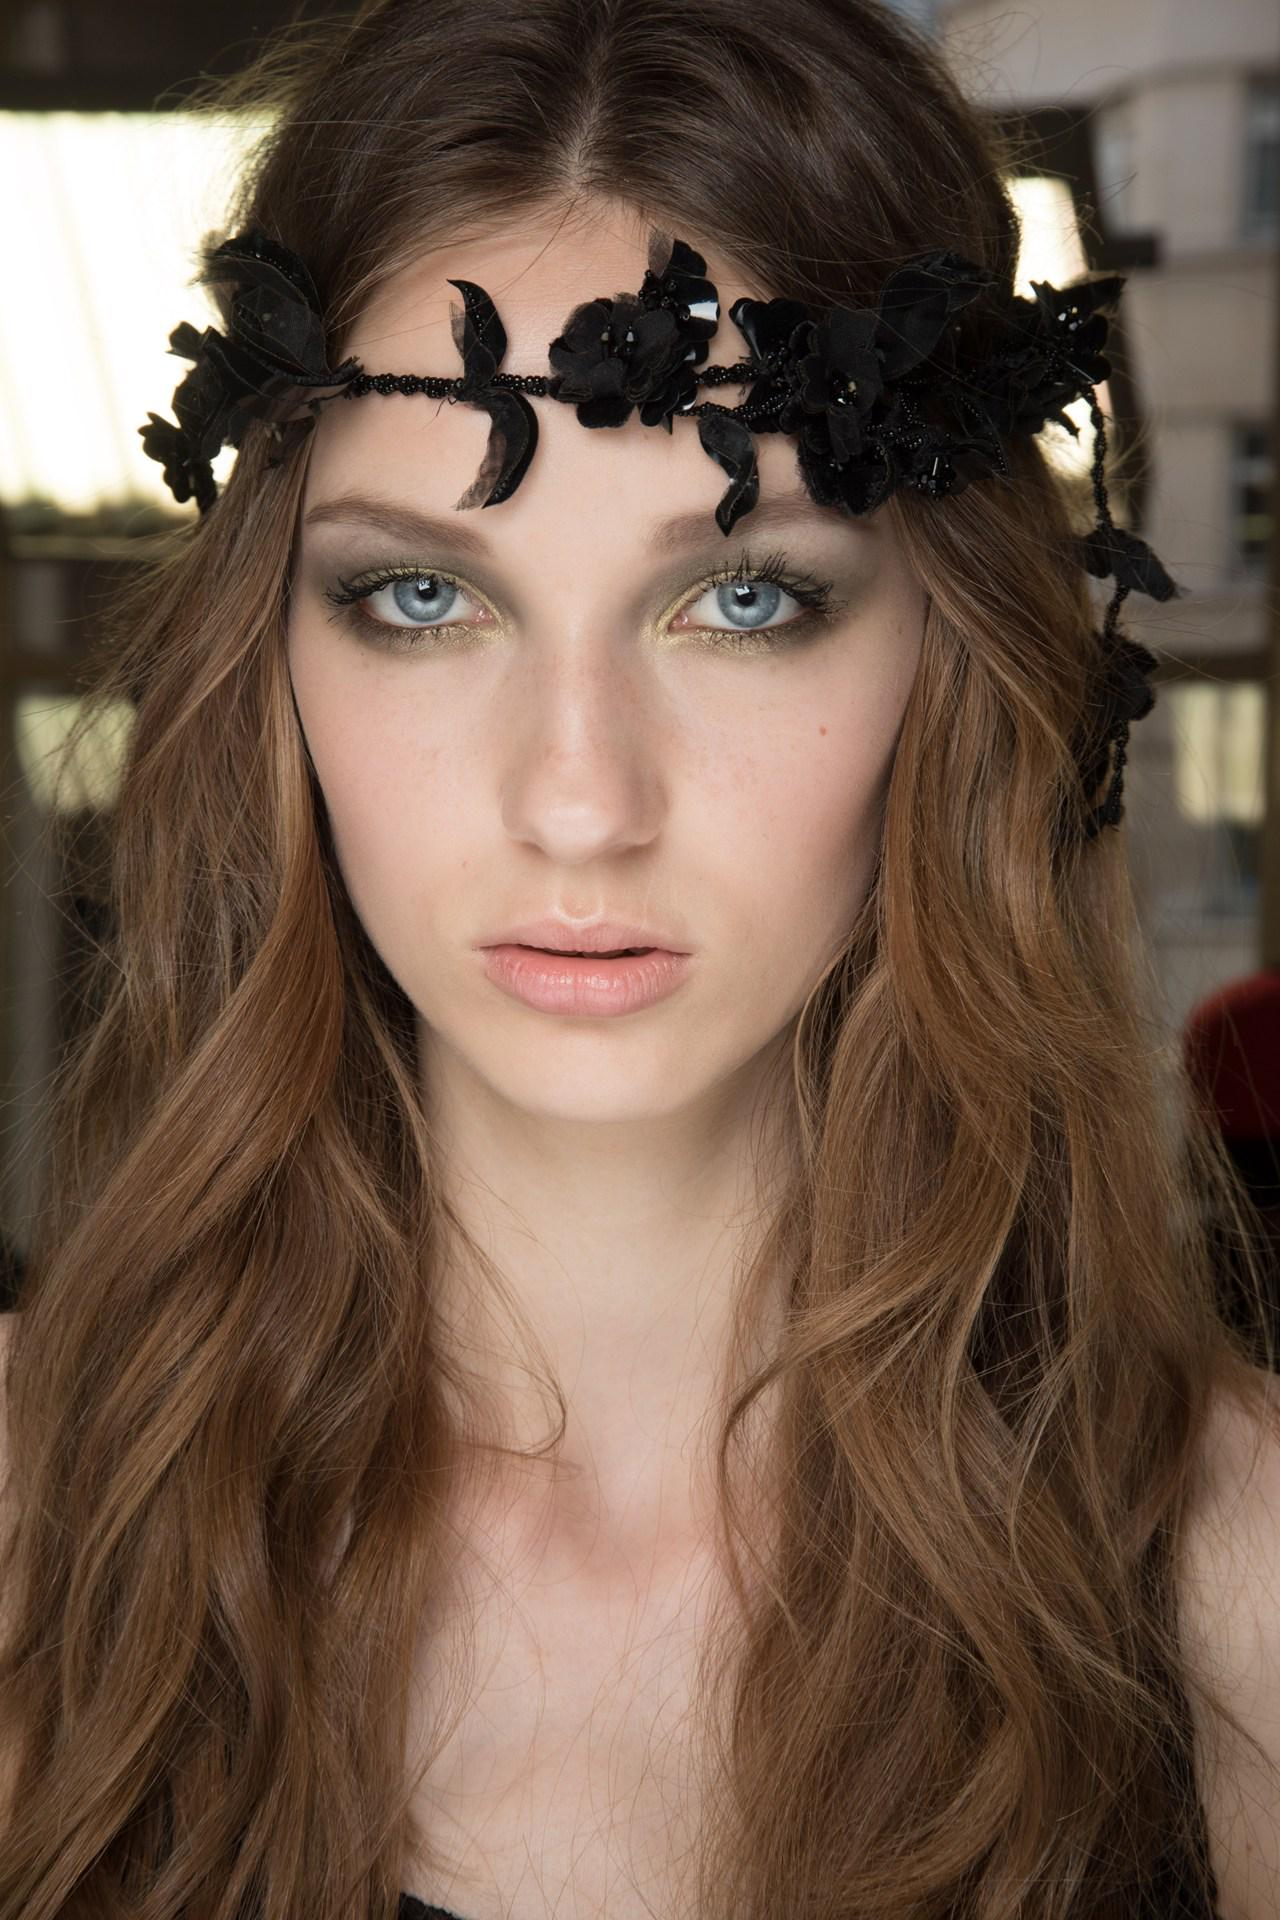 Ethereal emerald eyes and garlanded hair - the beauty at yesterday's @Versace #couture show http://t.co/Q4QHf1gBhA http://t.co/Ha1htHaSKu